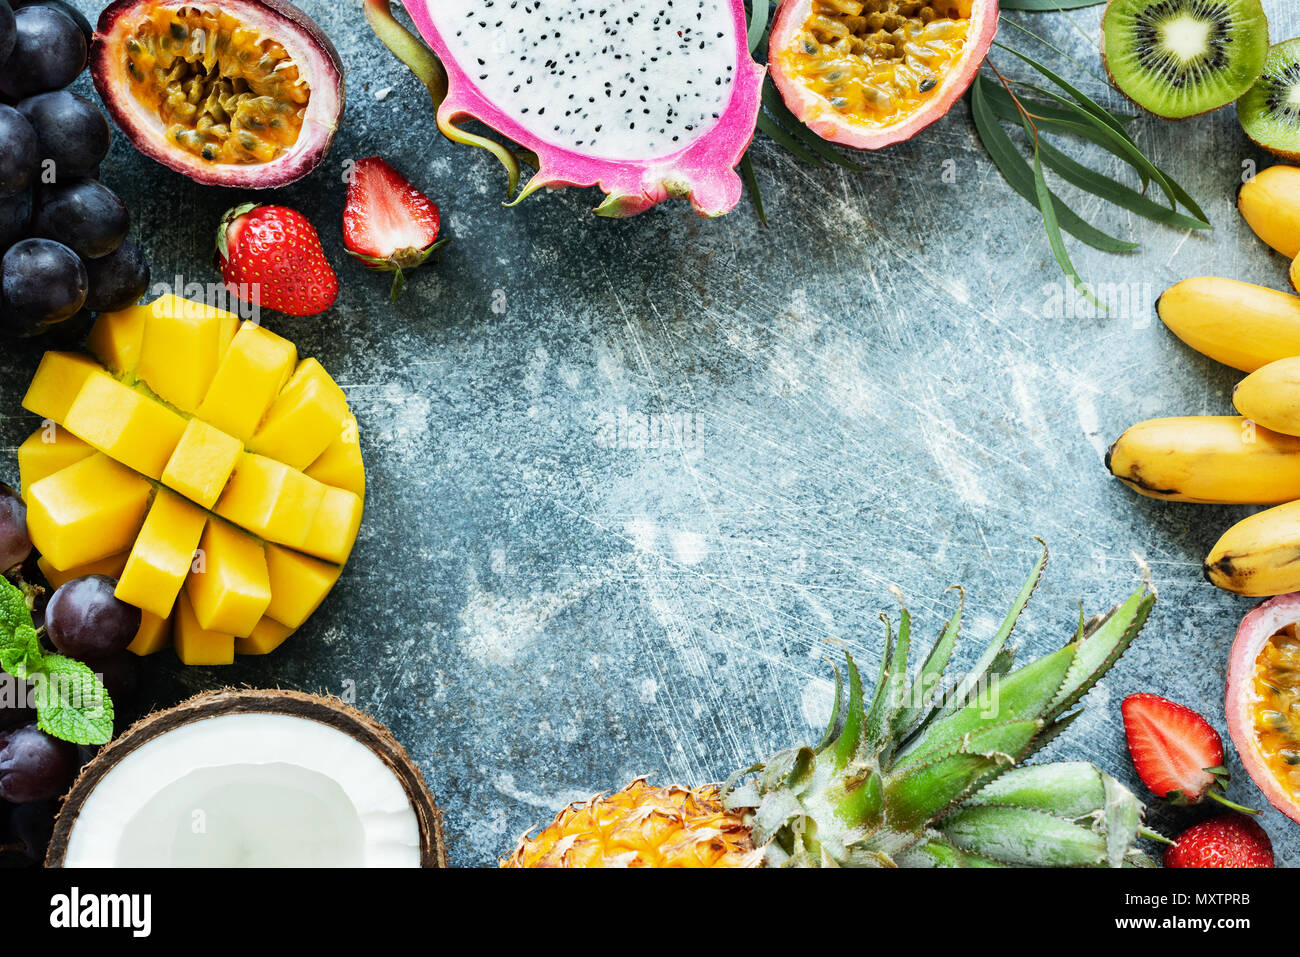 Frame of fresh tropical fruits on concrete background with copy space for text, top view. Concept of summer, exotic fruits, vegan and paleo diet Stock Photo